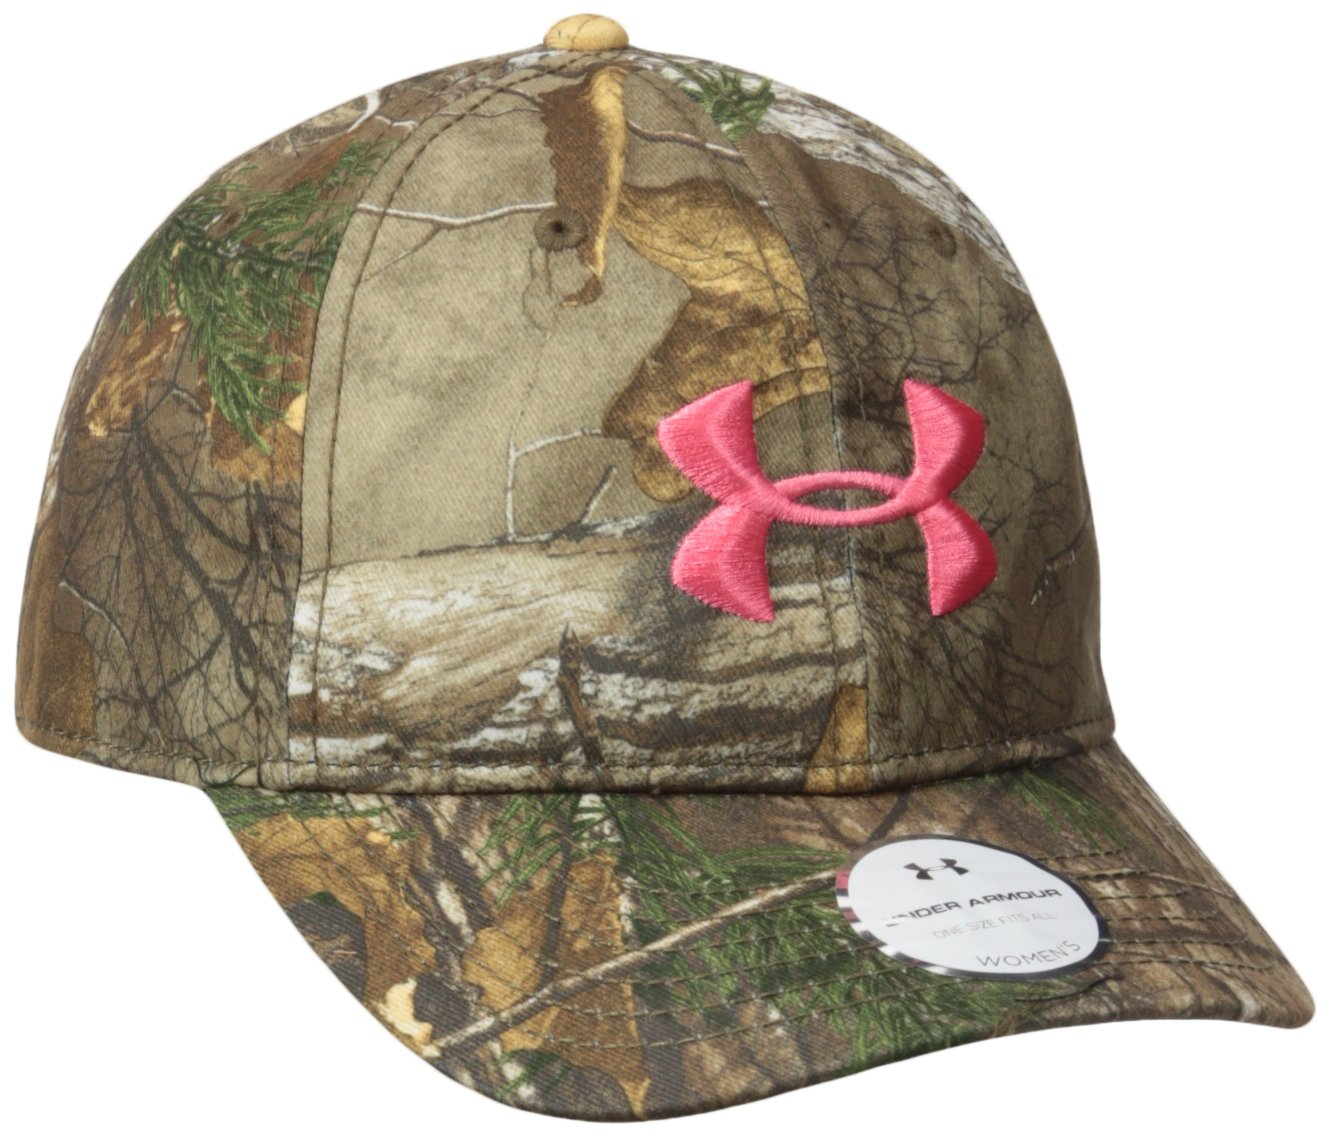 f2dbabbfba Under armour womens hat mossy oak treestand perfection one size sports  outdoors jpg 1332x1136 Women under